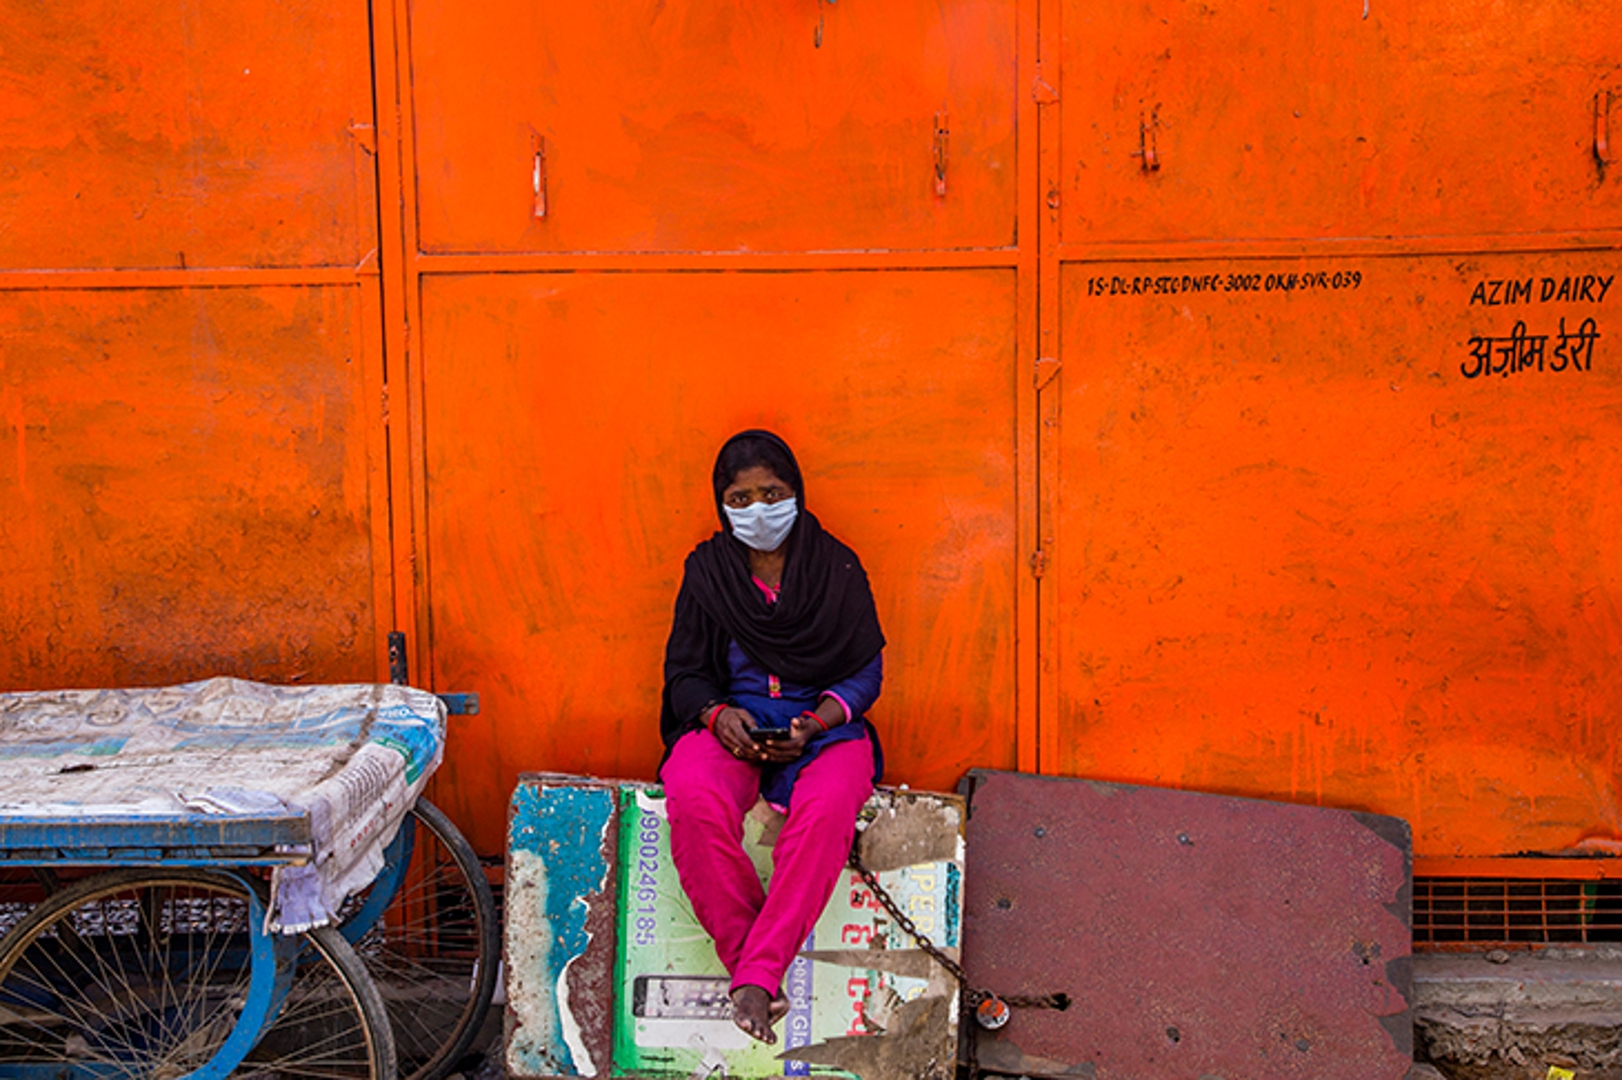 A masked woman in New Delhi, India